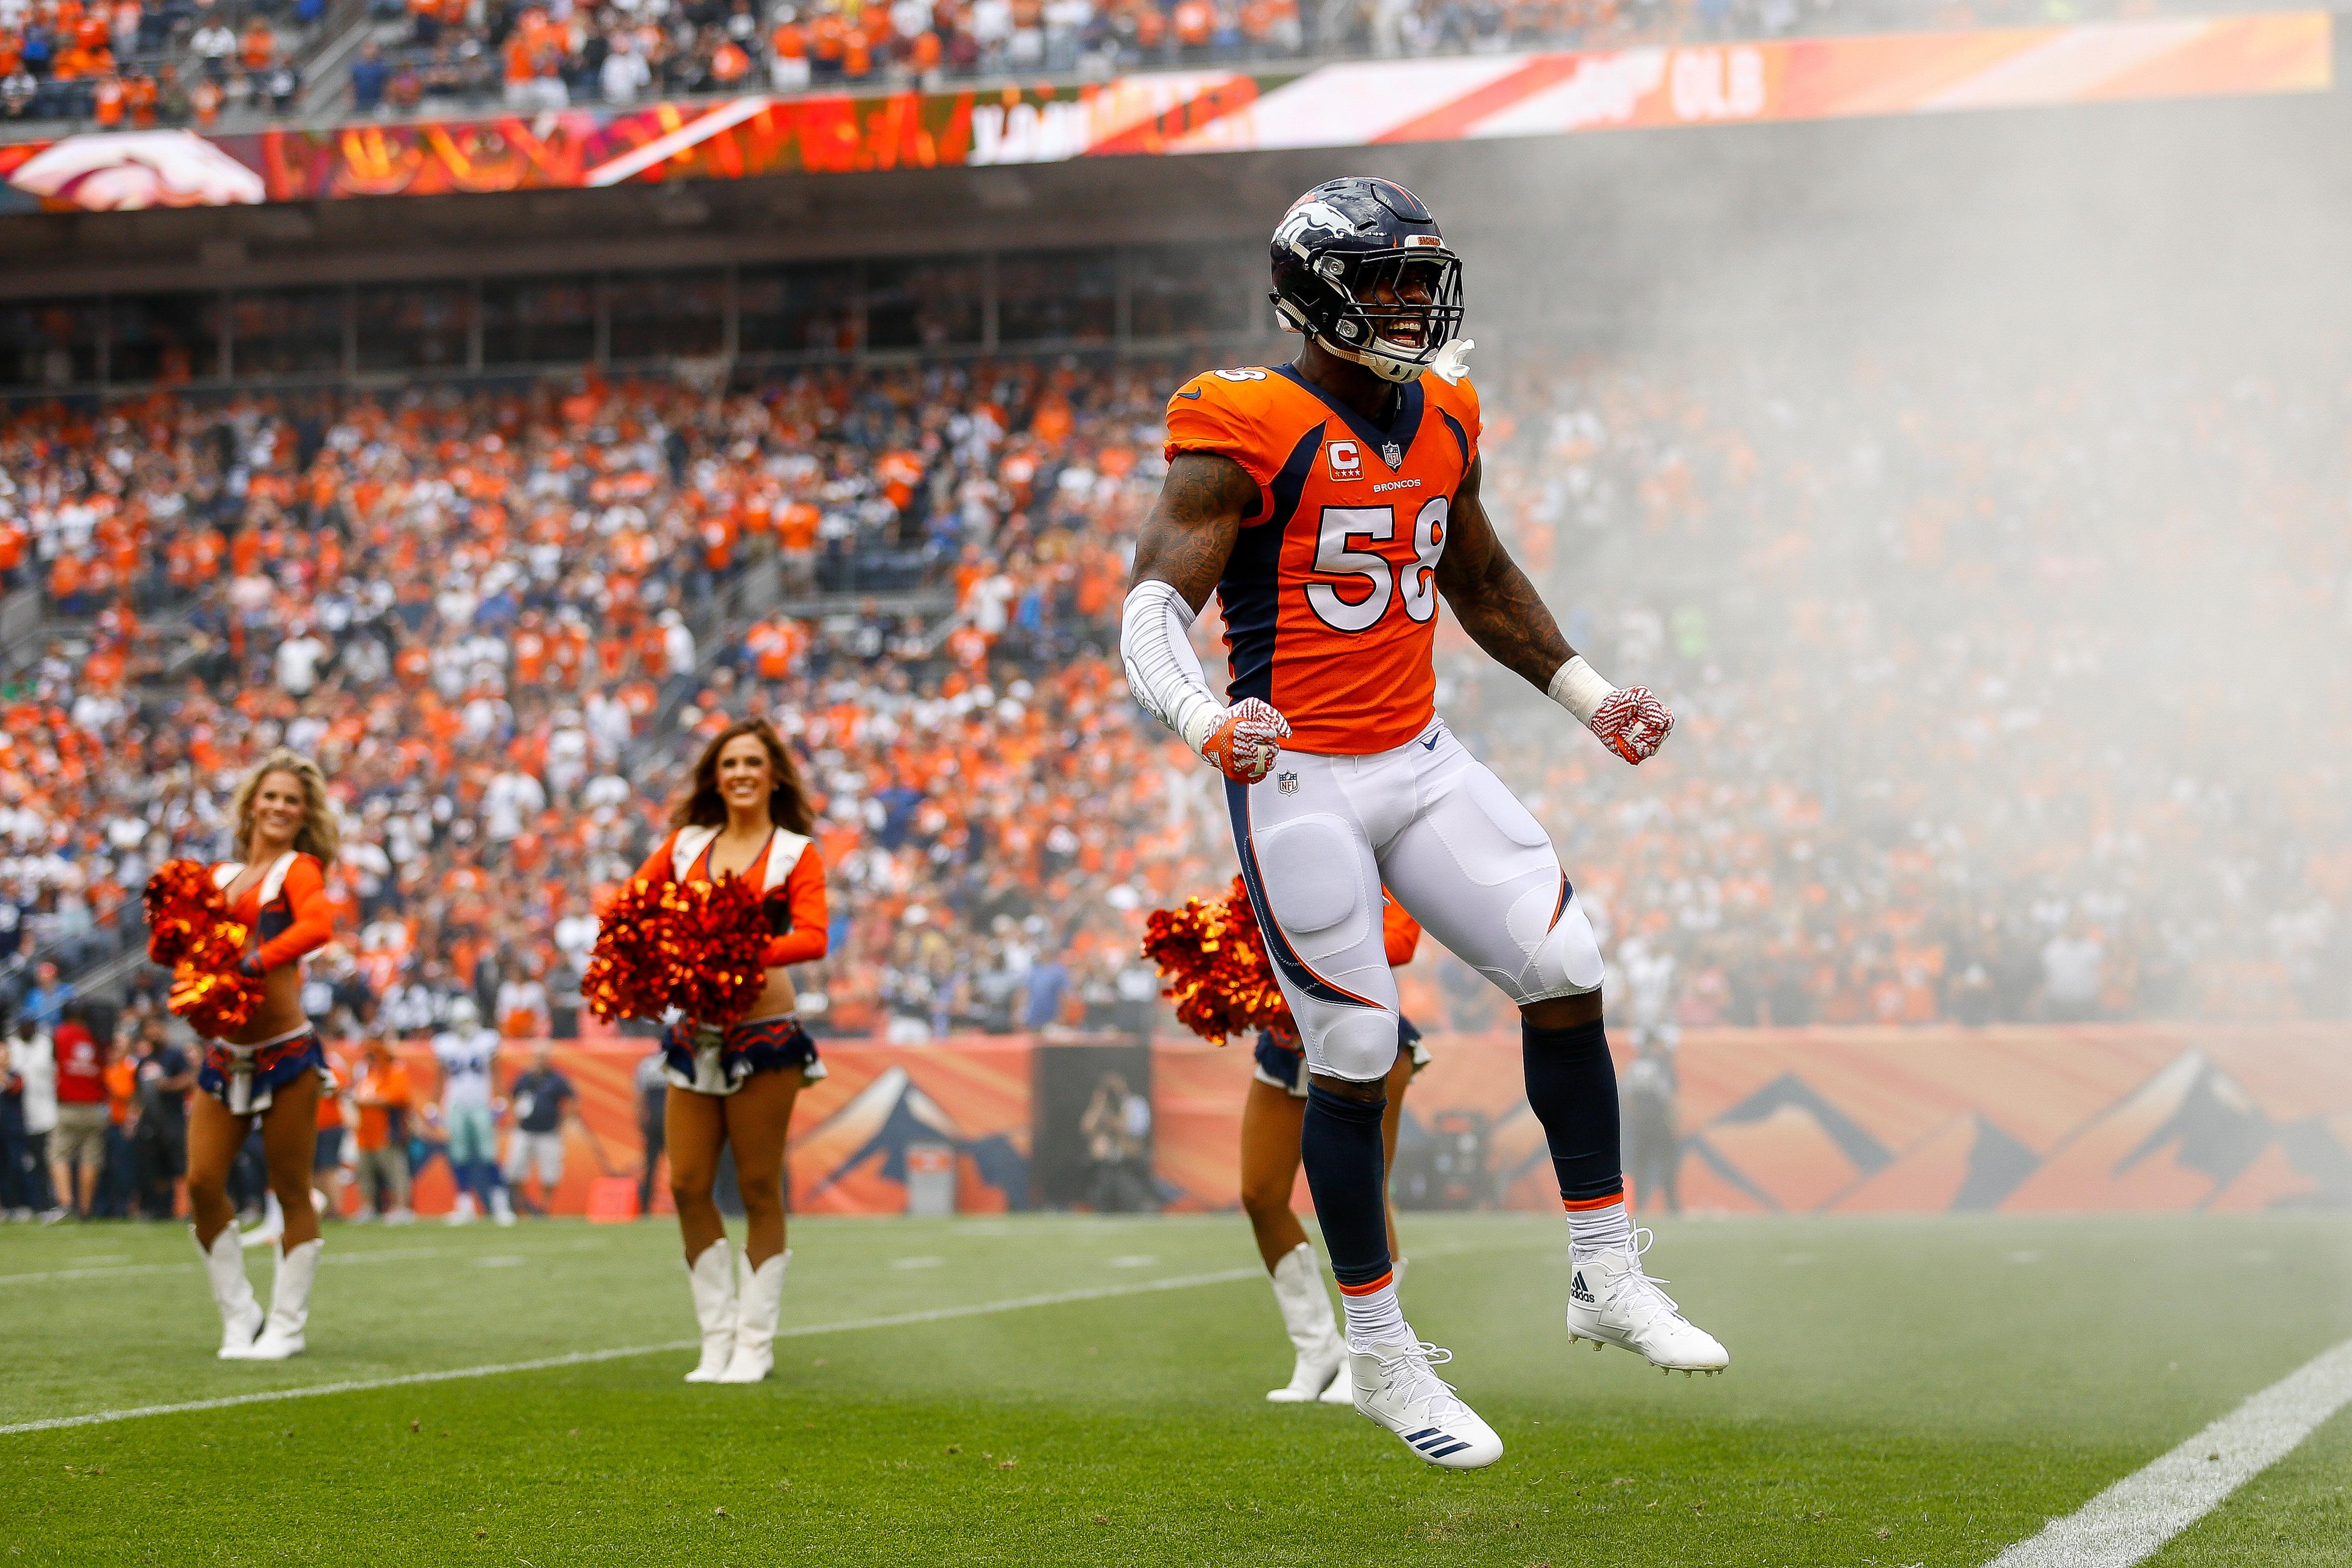 reputable site 99f03 5e43e Chicago Bears vs. Denver Broncos 2019: Prediction Against ...